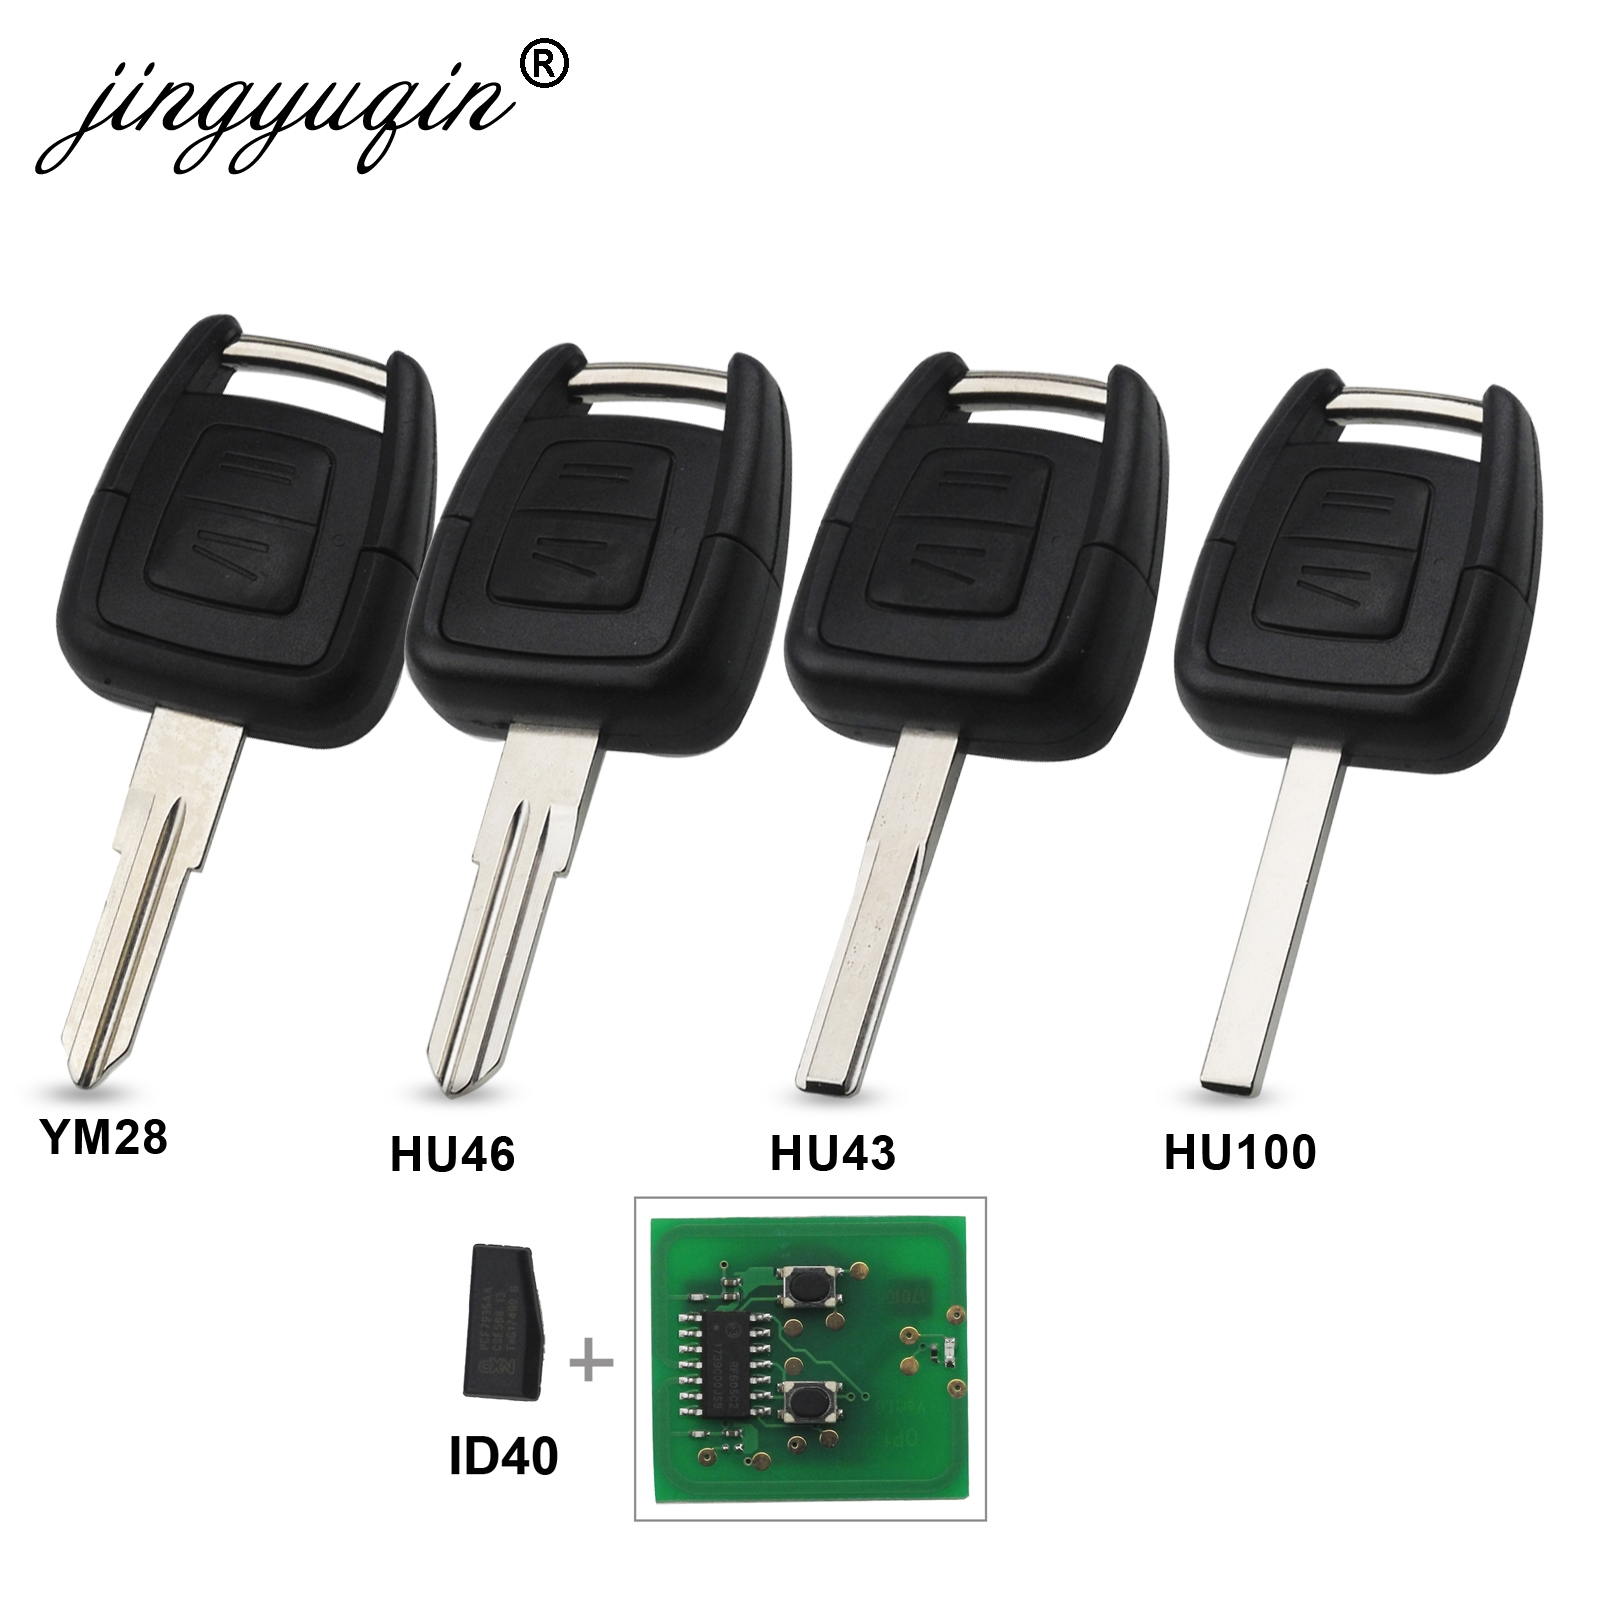 Jingyuqin 2 Buttons 433Mhz Fob Remote Key For Opel Vauxhall Vectra Zafira OP1 24424723 With ID40 Chip HU43 HU100 YM28 HU46 Blade